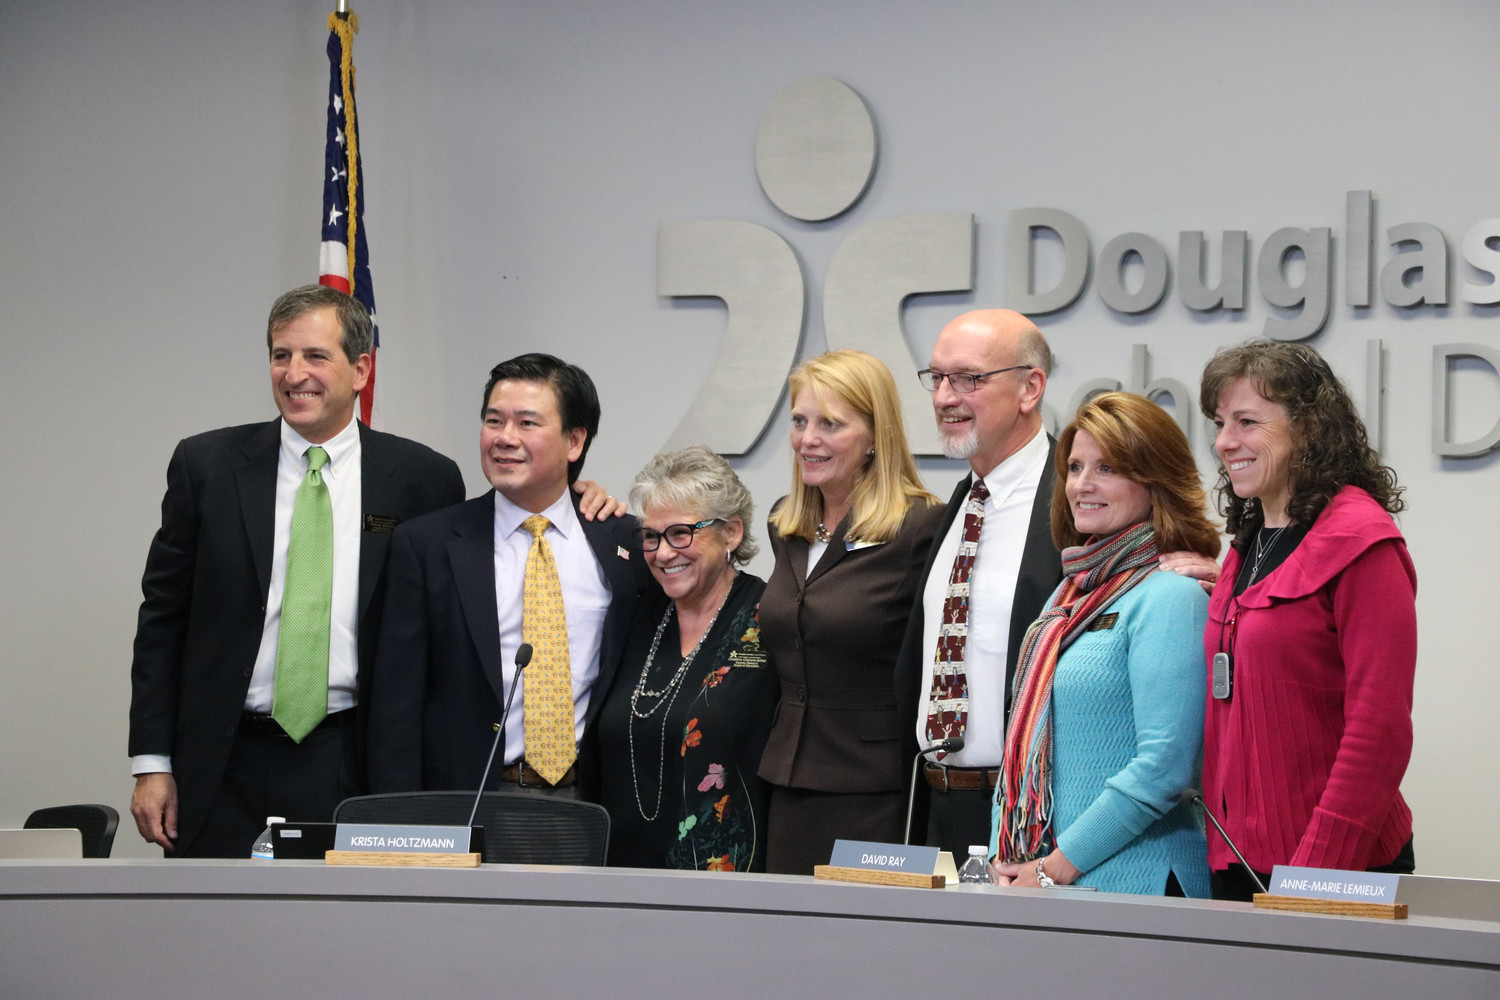 Anthony Graziano, left, Kevin Leung, Chris Schor, Krista Holtzmann, David Ray, Anne-Marie Lemieux and Wendy Vogel stand as the new Douglas County School Board at a Nov. 28 board meeting in Castle Rock.